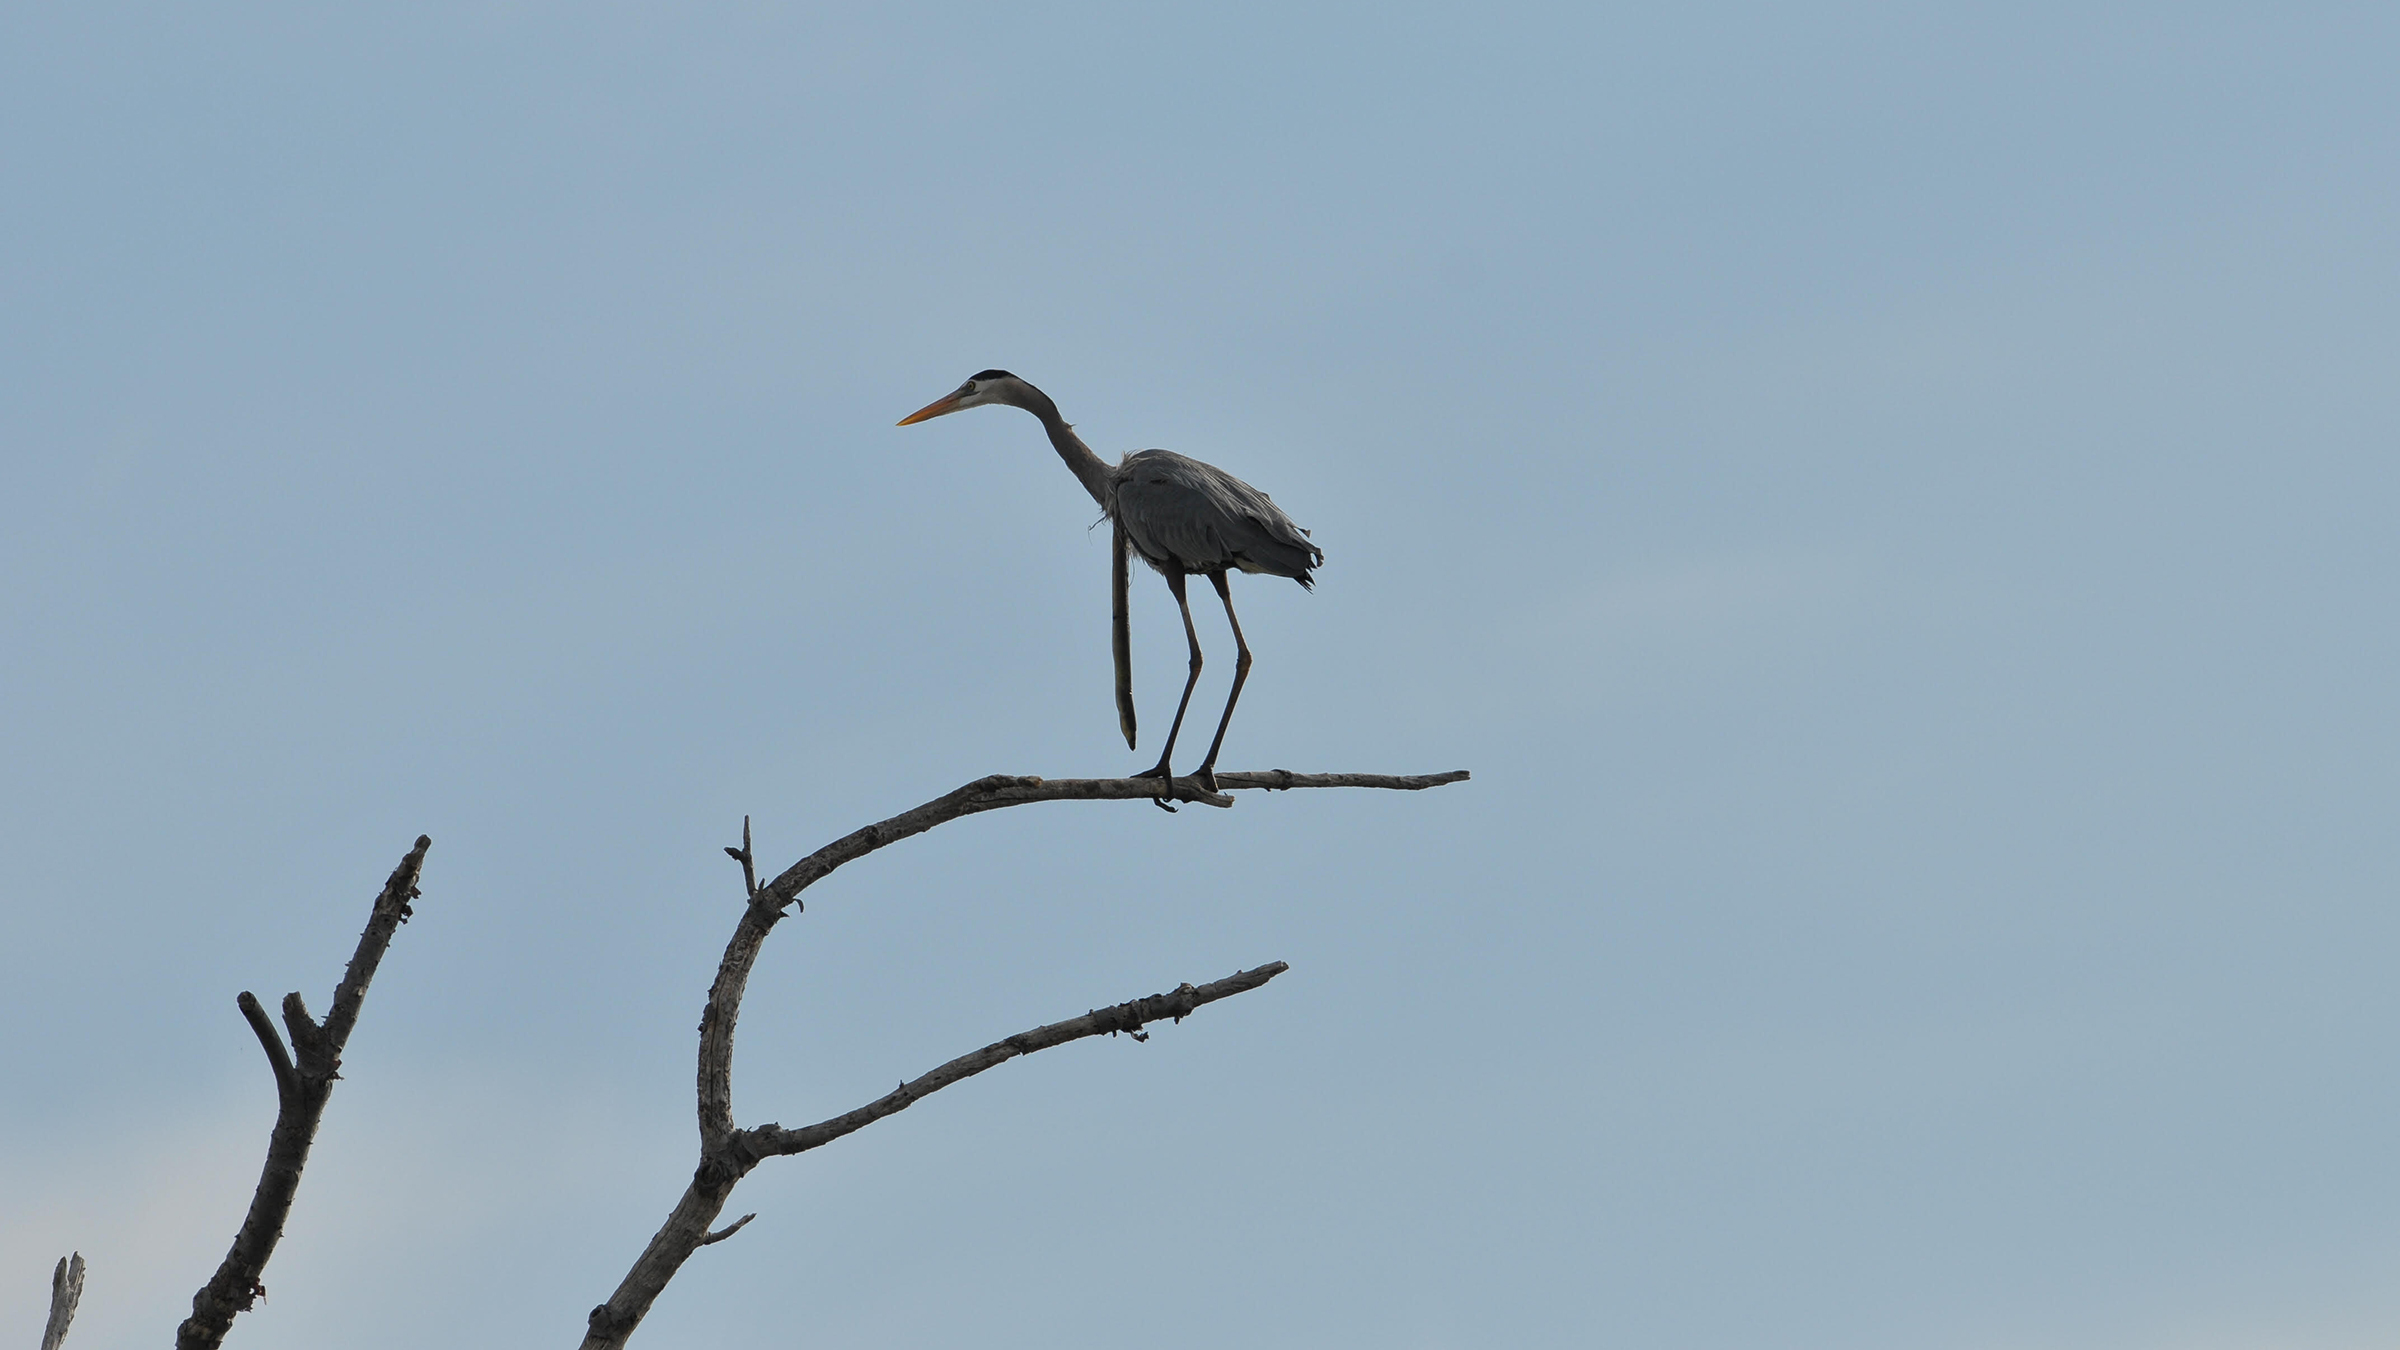 The heron appeared unbothered by the snake eel.